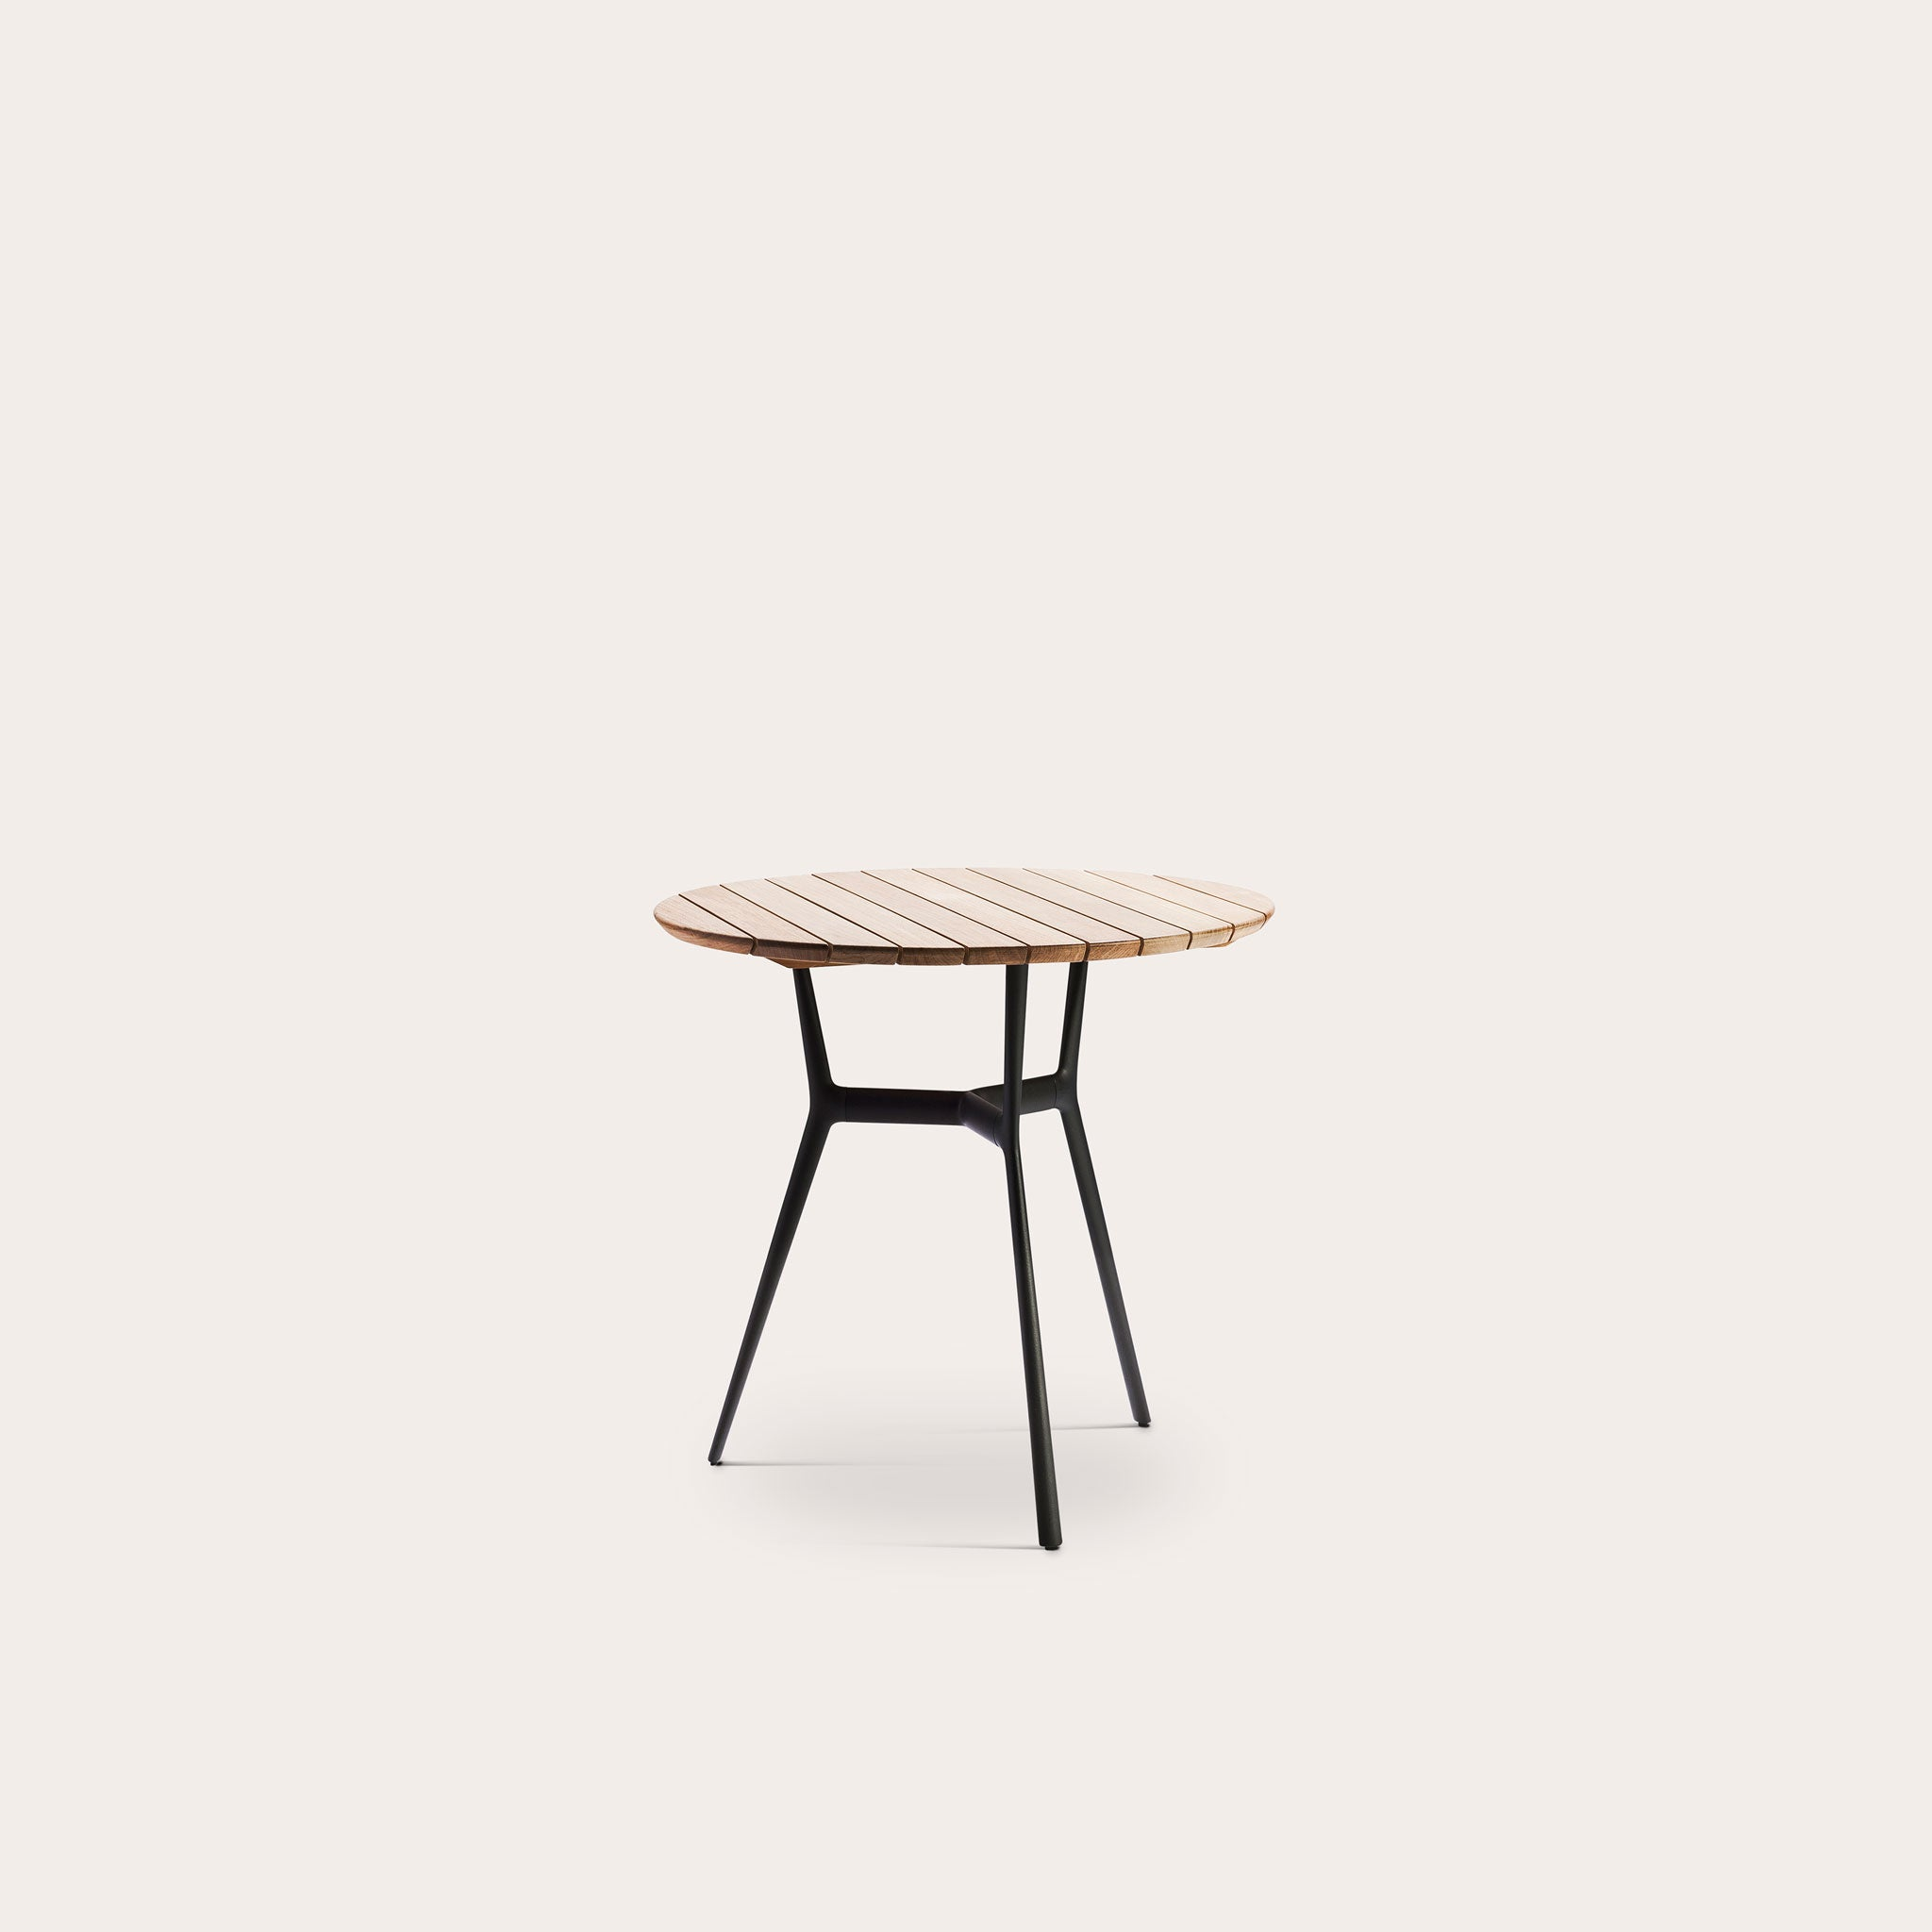 BRANCH Bistro Table Round Outdoor Altherr Lievore Molina Designer Furniture Sku: 007-200-11038